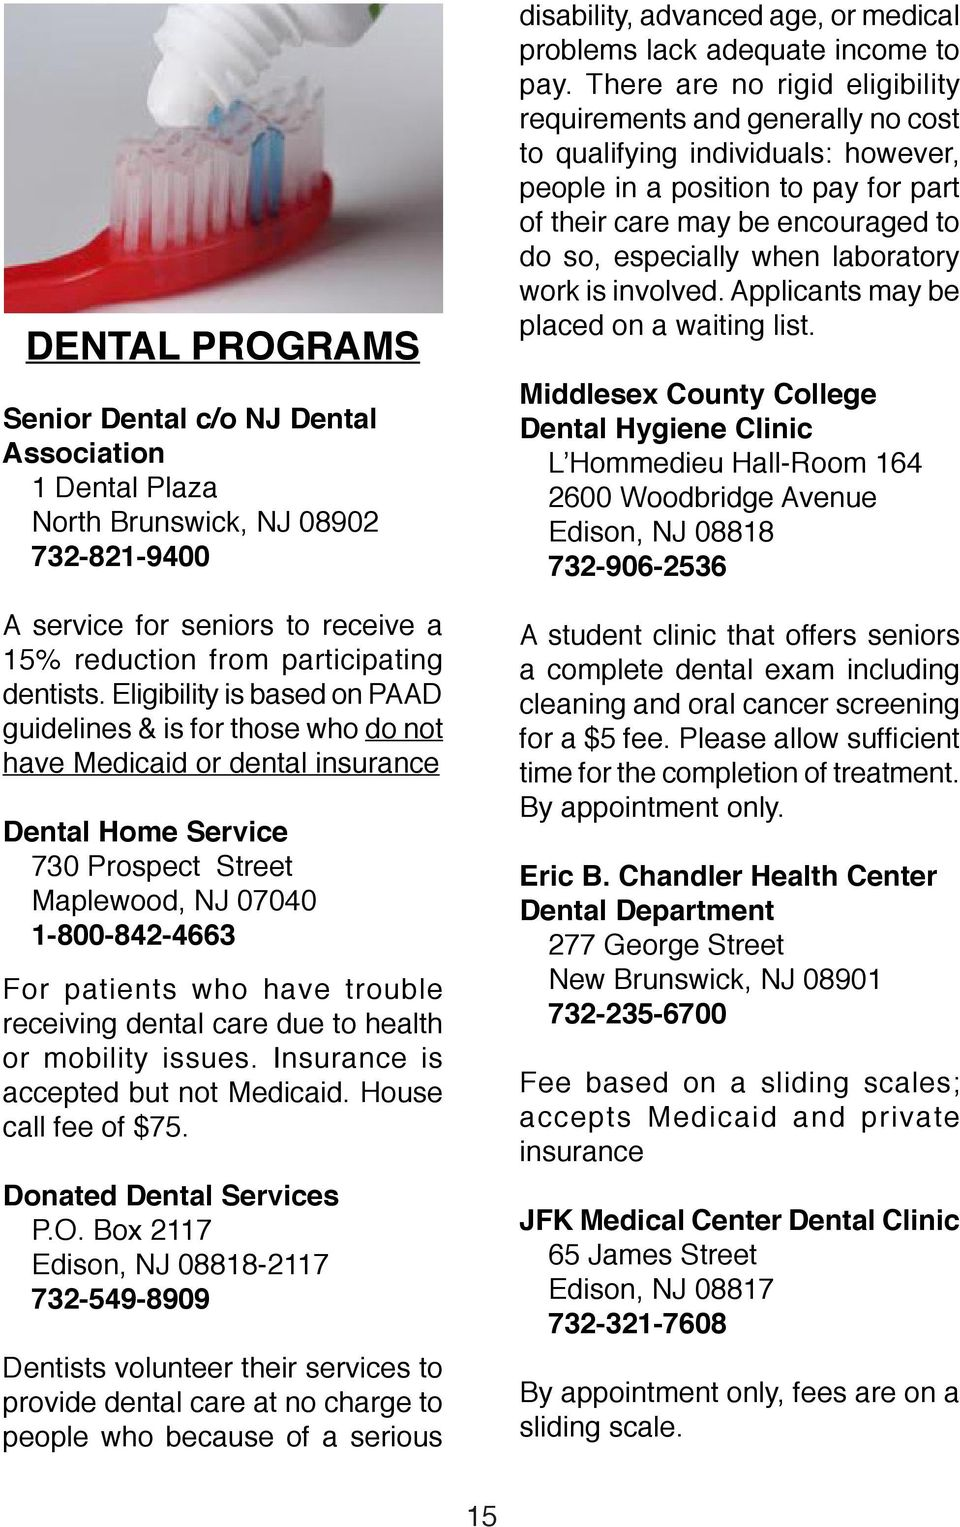 trouble receiving dental care due to health or mobility issues. Insurance is accepted but not Medicaid. House call fee of $75. Donated Dental Services P.O.